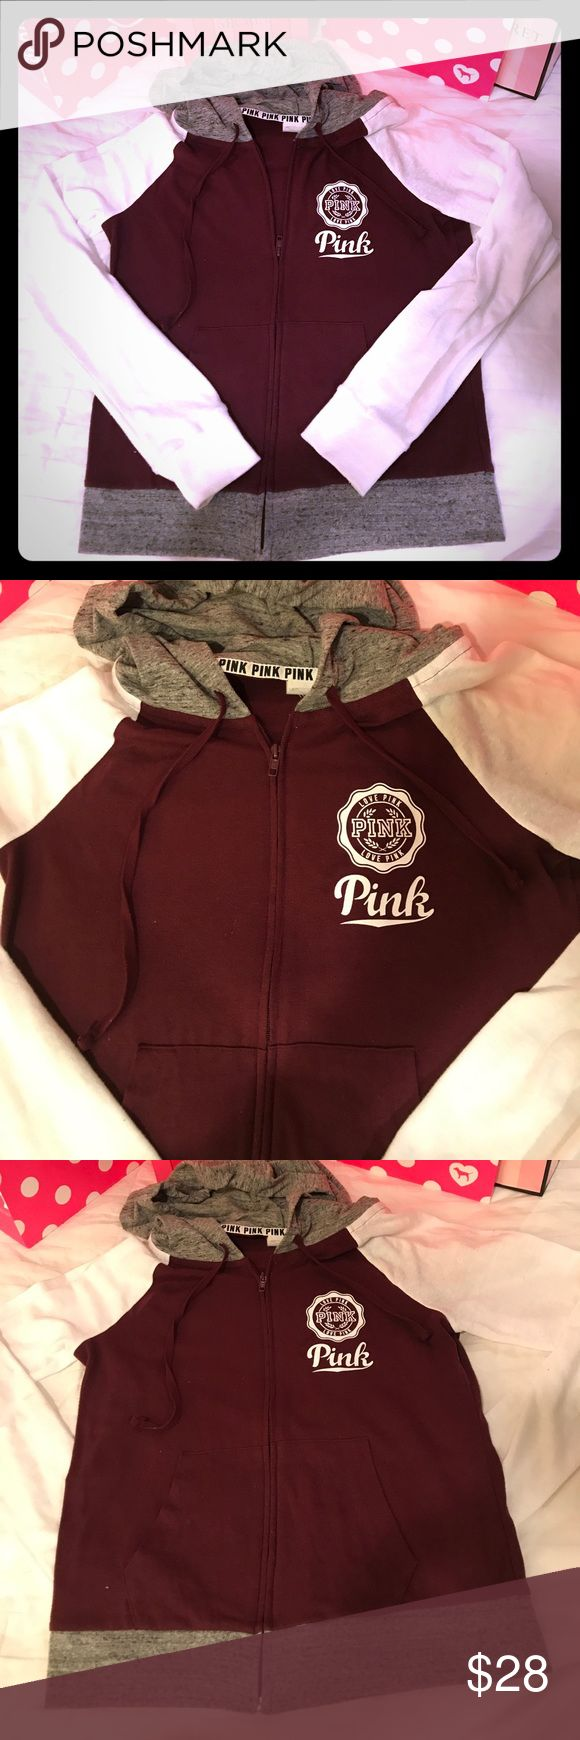 Victoria Secret Pink Beach full zip Victoria Secret Pink super cute Ruby Red/Gray/White perfect Beach Full Zip. Size Small- I bought this full zip brand new from one of my favorite poshers & a few of her items came with the tags on the inside cut - no biggie lol Because no one sees your inside tag 😂 PINK Victoria's Secret Tops Sweatshirts & Hoodies